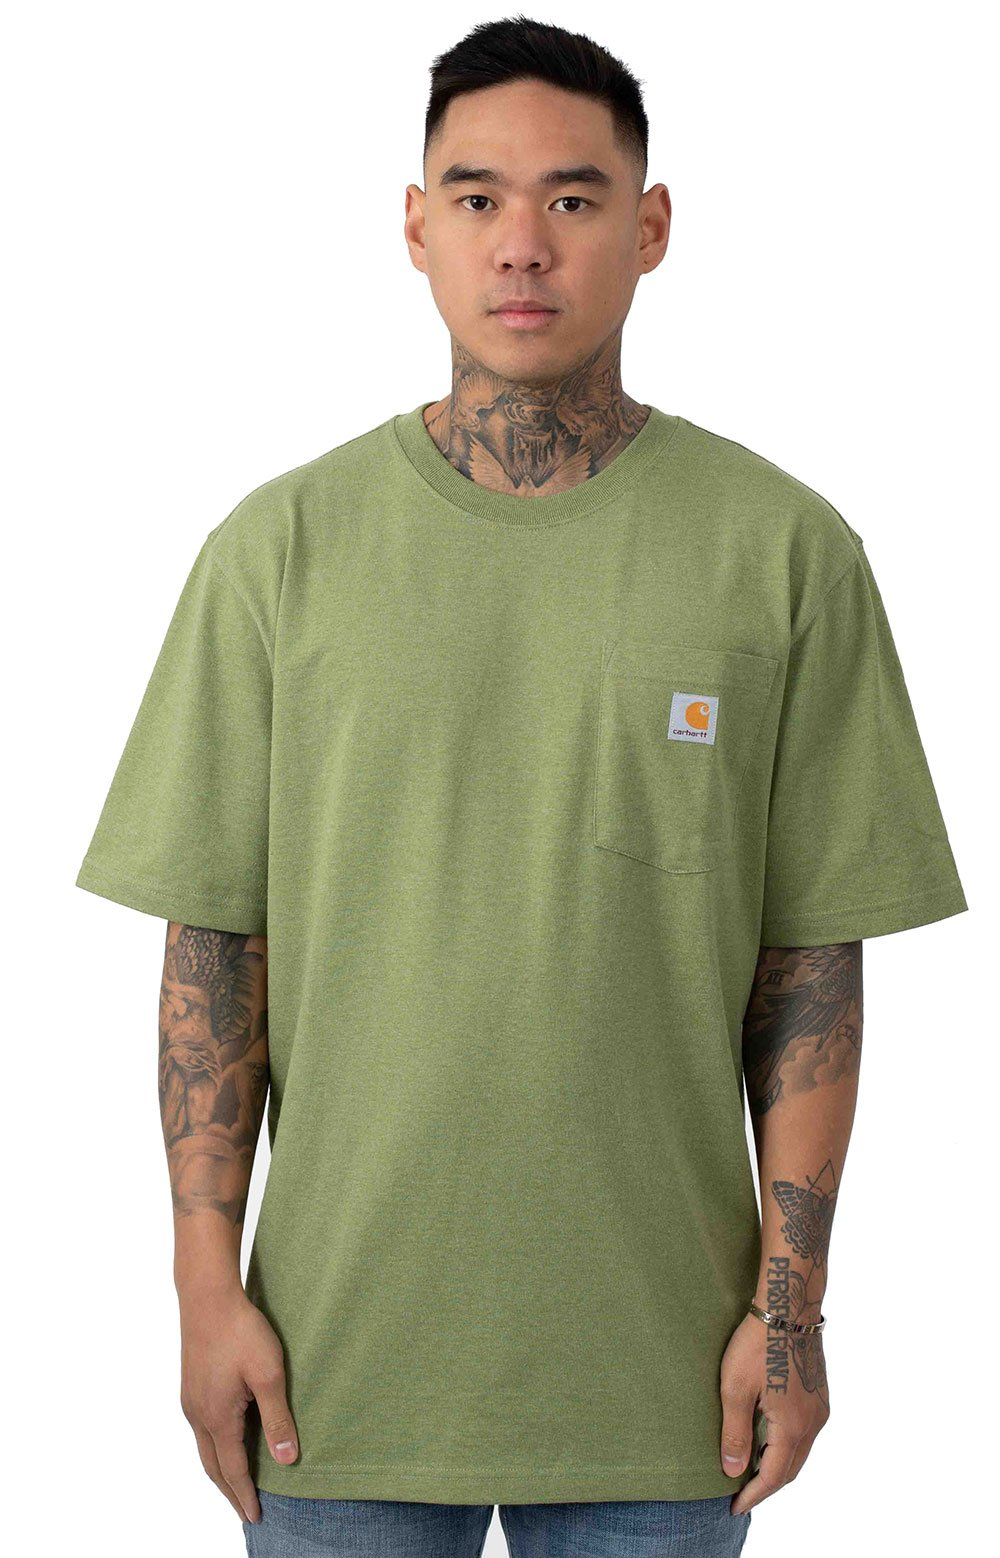 Carhartt, (103559) Workwear C Logo Graphic Pocket T-Shirt - Oil Green Heather